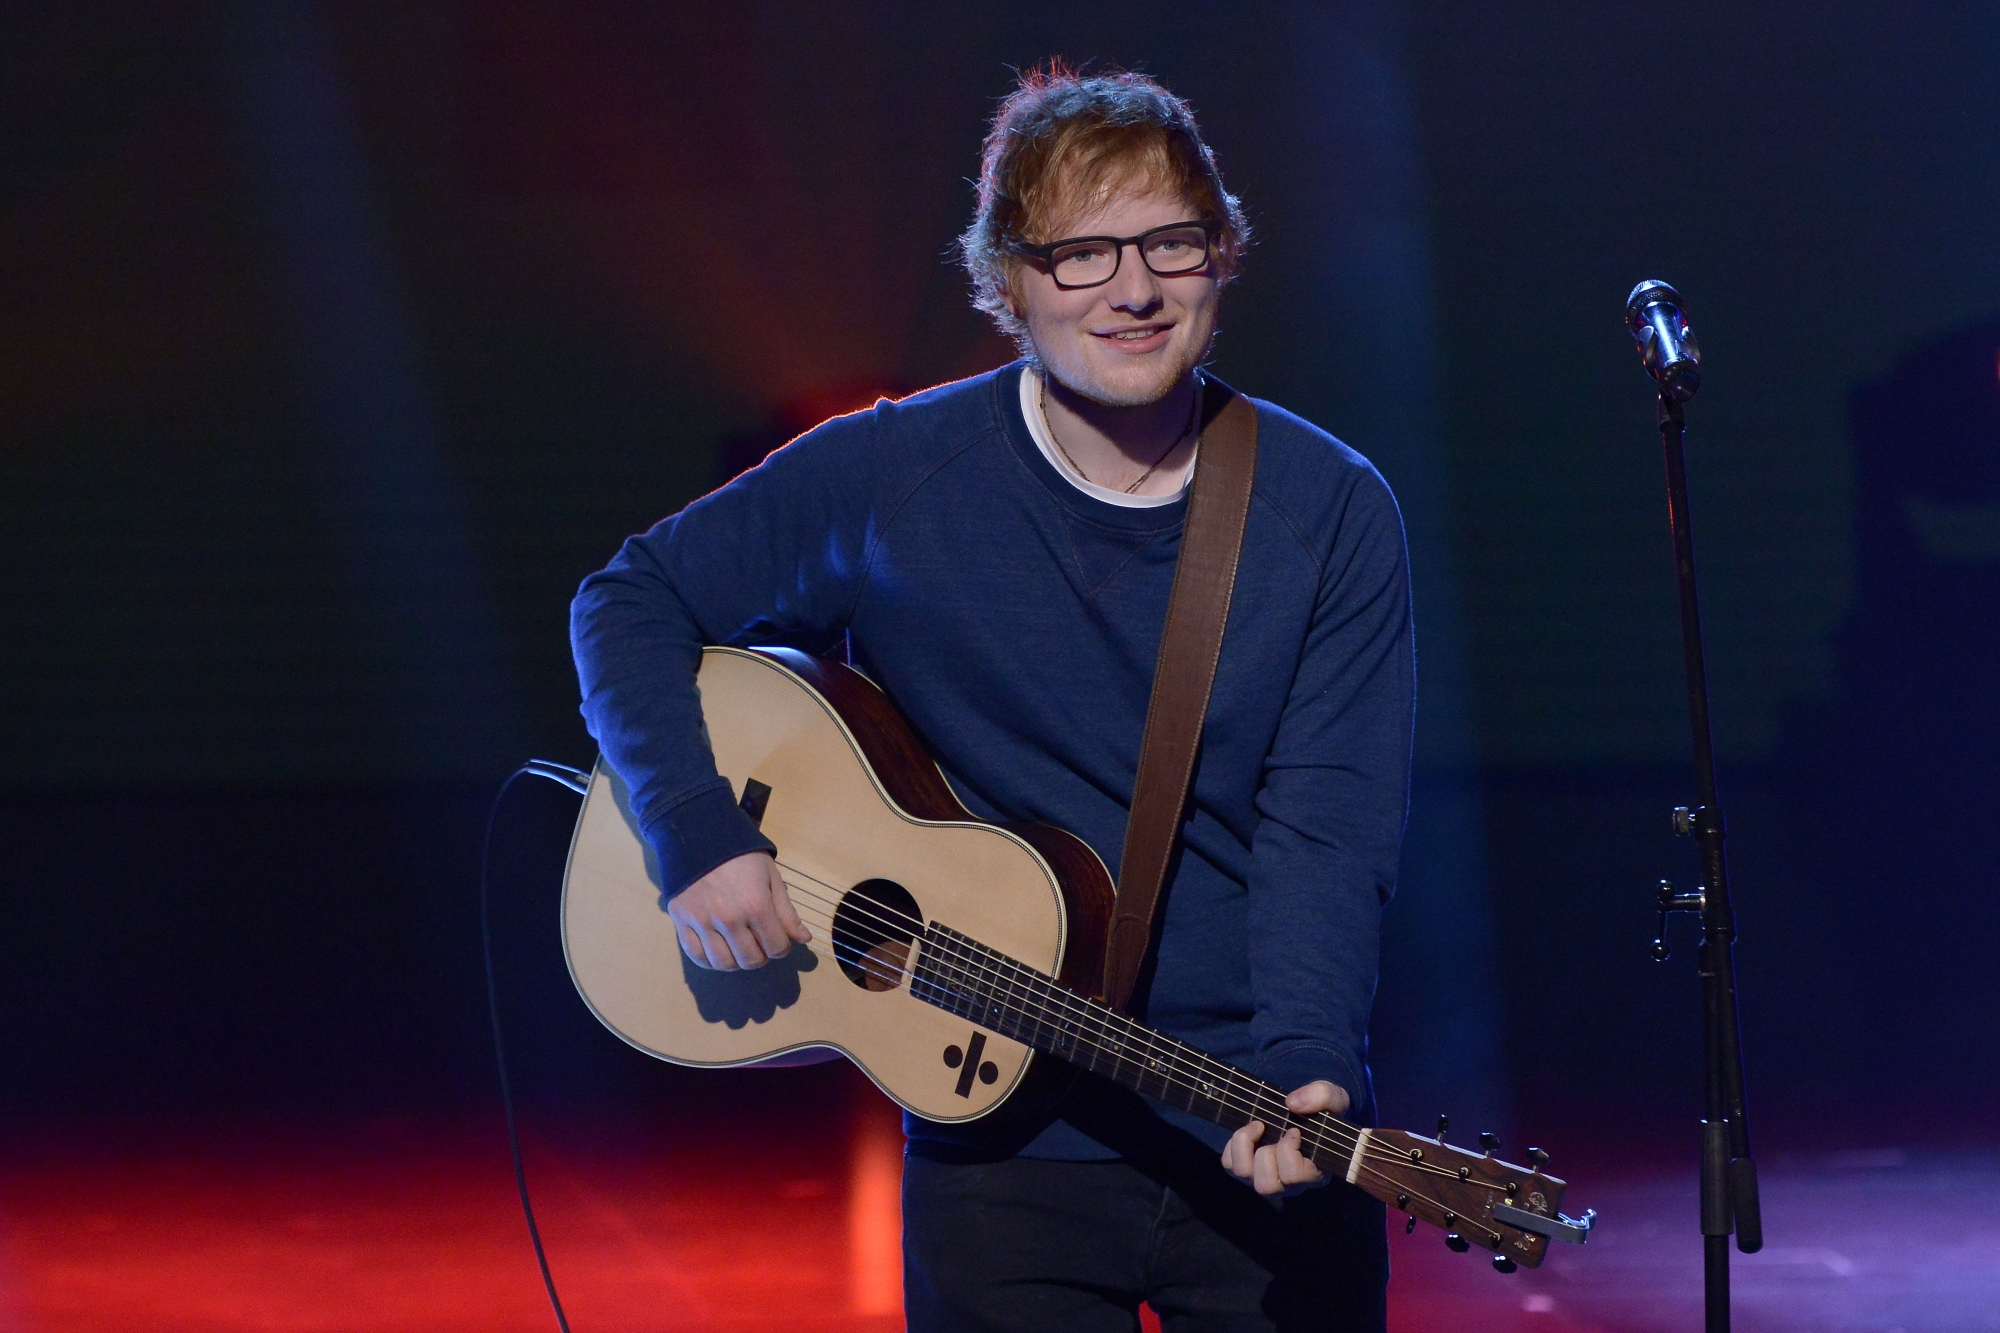 L'interview d'Ed Sheeran qui scandalise les internautes